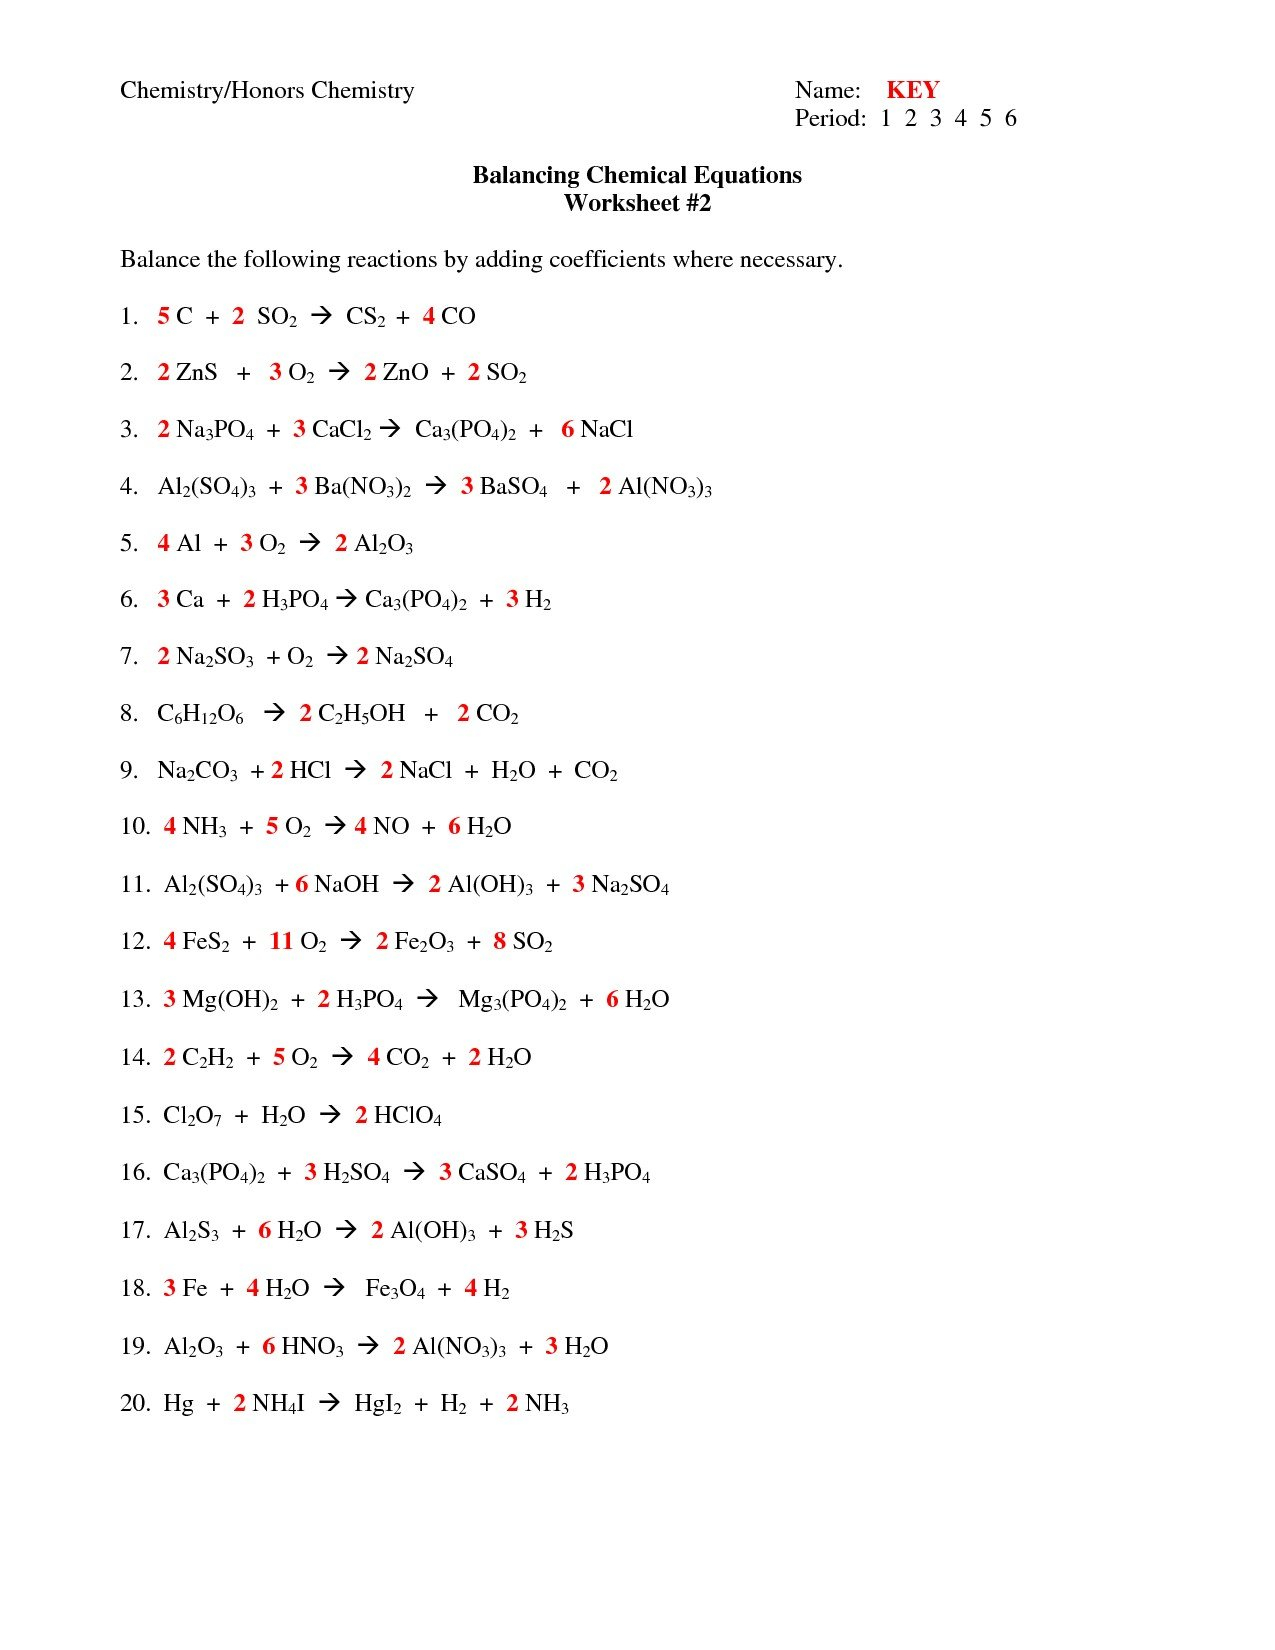 Chapter 7 Worksheet 1 Balancing Chemical Equations Algebra 1 Pertaining To Chemistry Chapter 7 Worksheet Answers